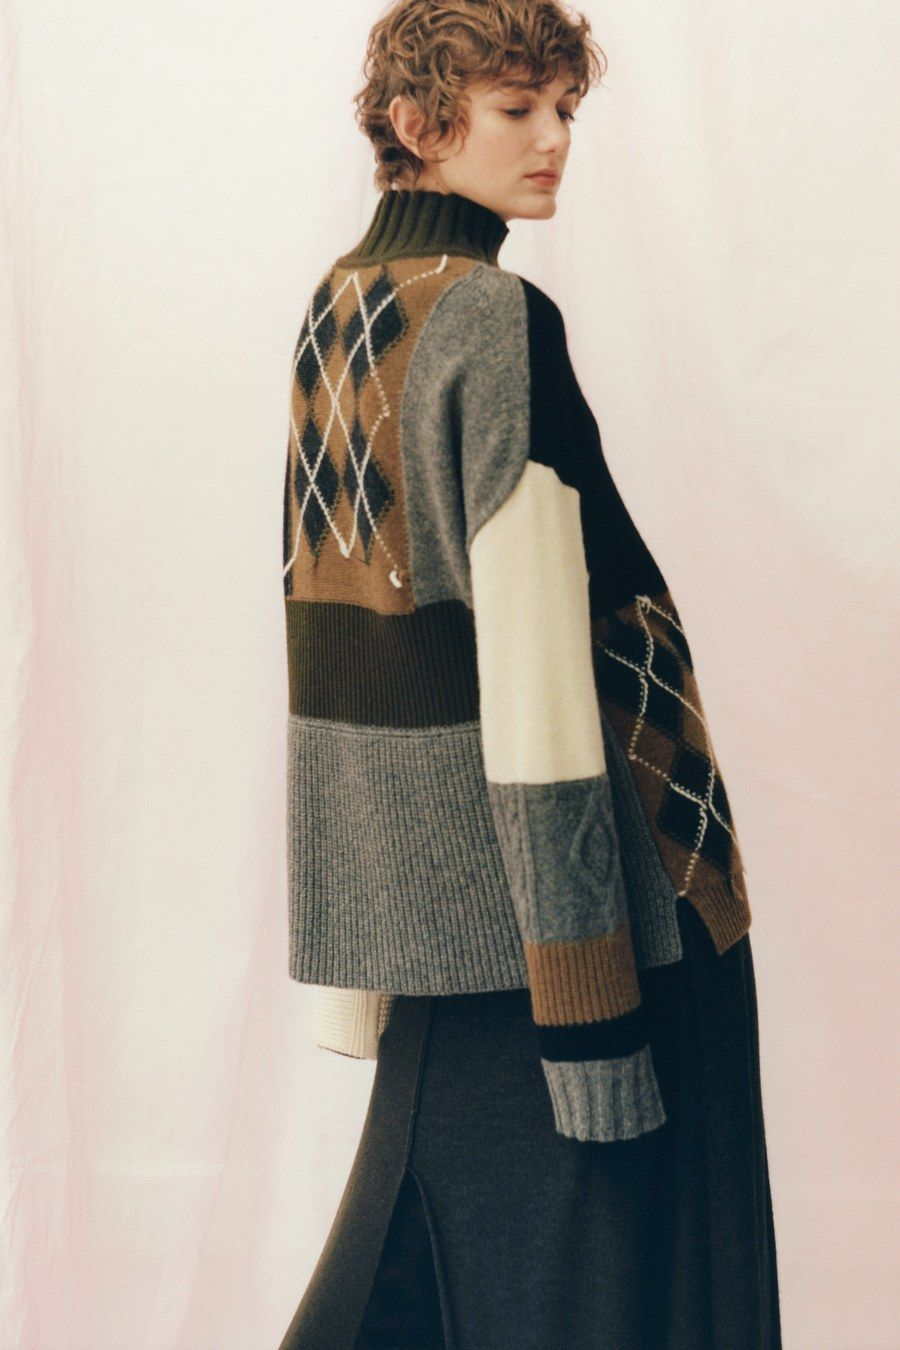 Pringle of Scotland Pre Fall 2019 Fashion Show | Knitwear